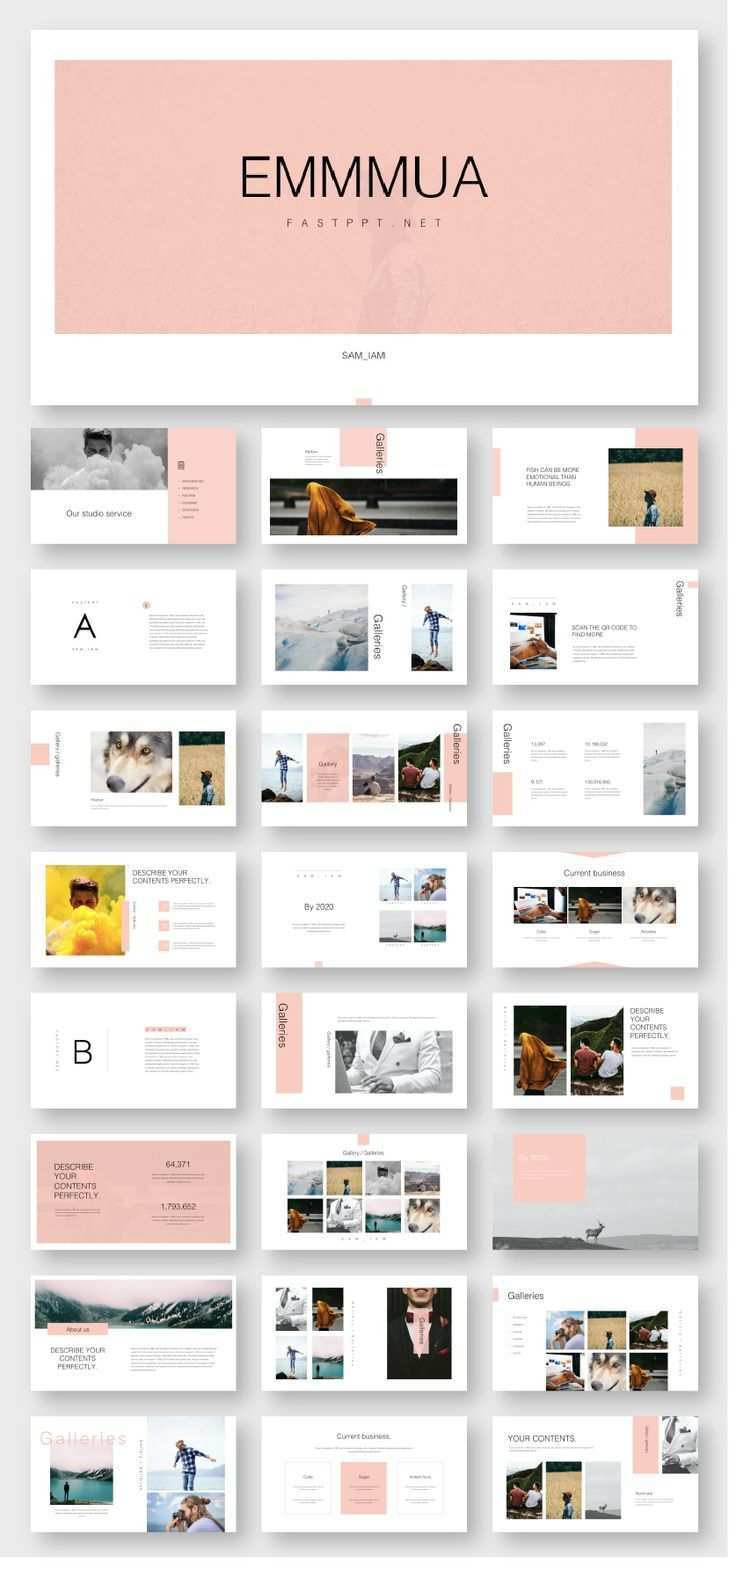 Creative Slides Presentation Template Original And High Quality Powerpoint Templates Presentation Slides Templates Presentation Design Layout Portfolio Design Layout